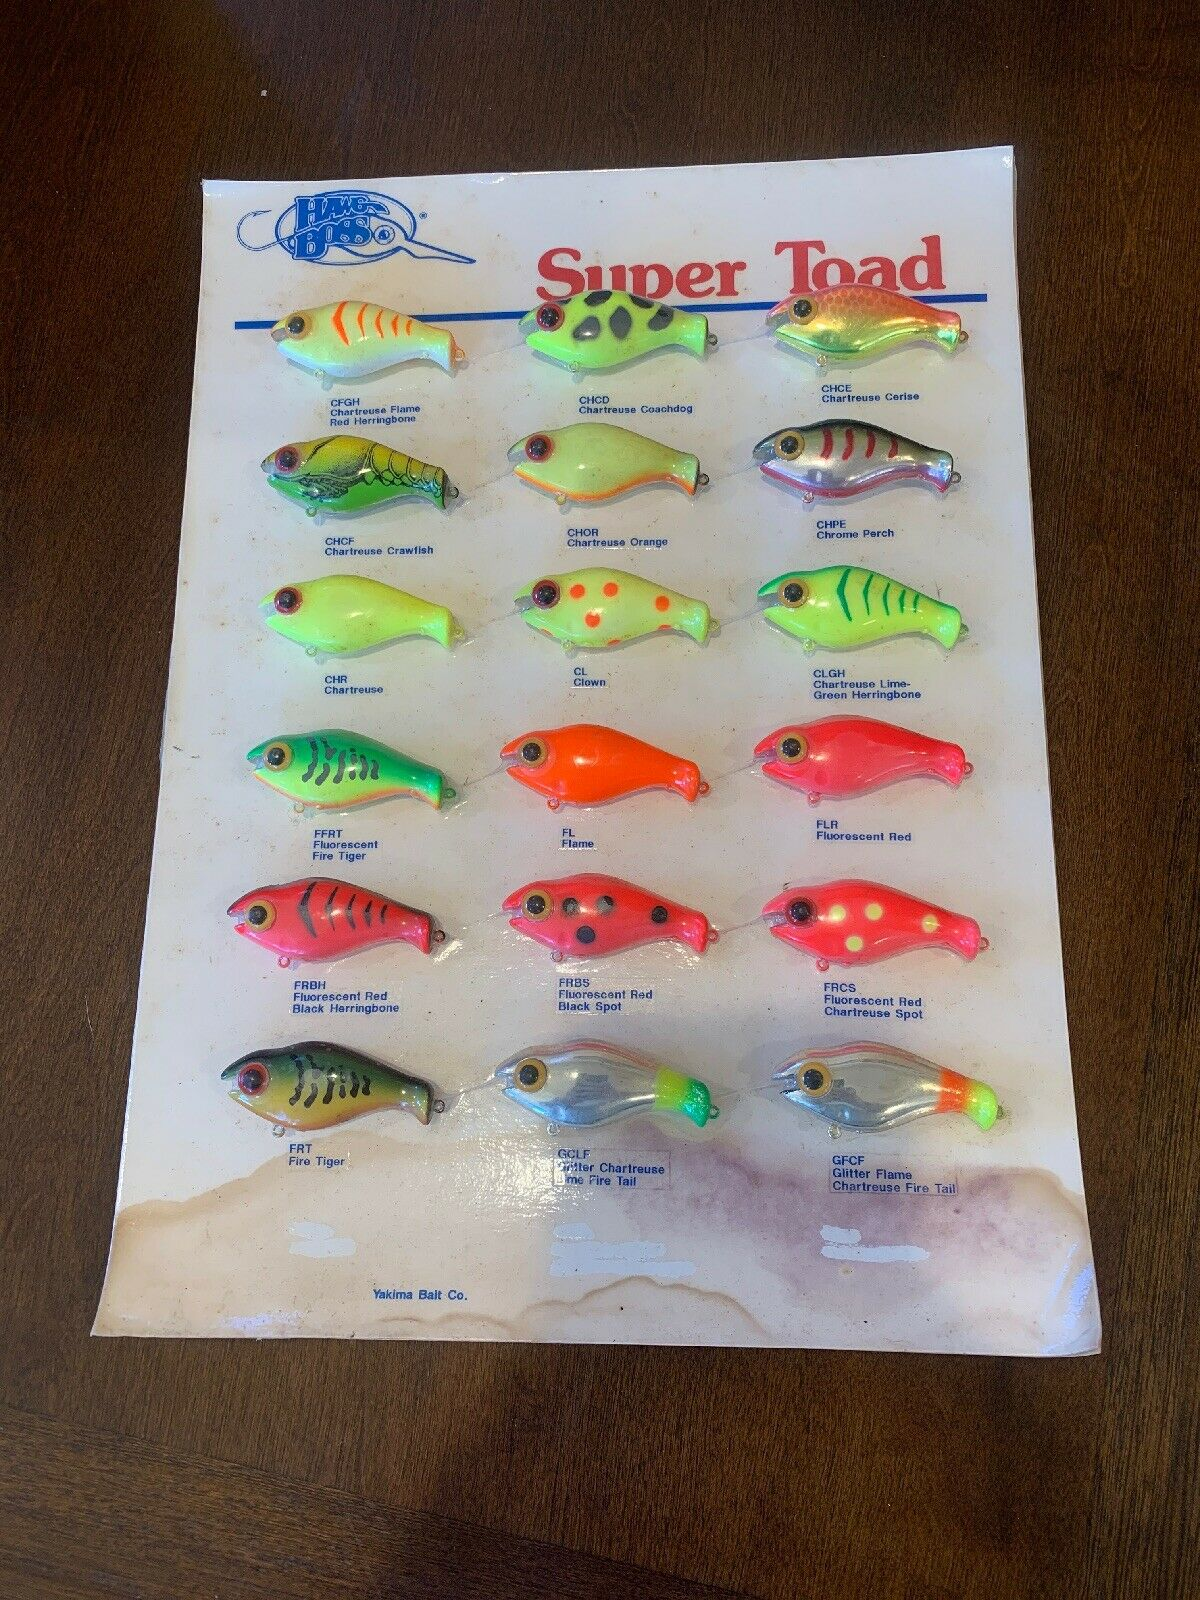 Hawg Boss Super  Toad Dealer Display Card 2002  clients first reputation first